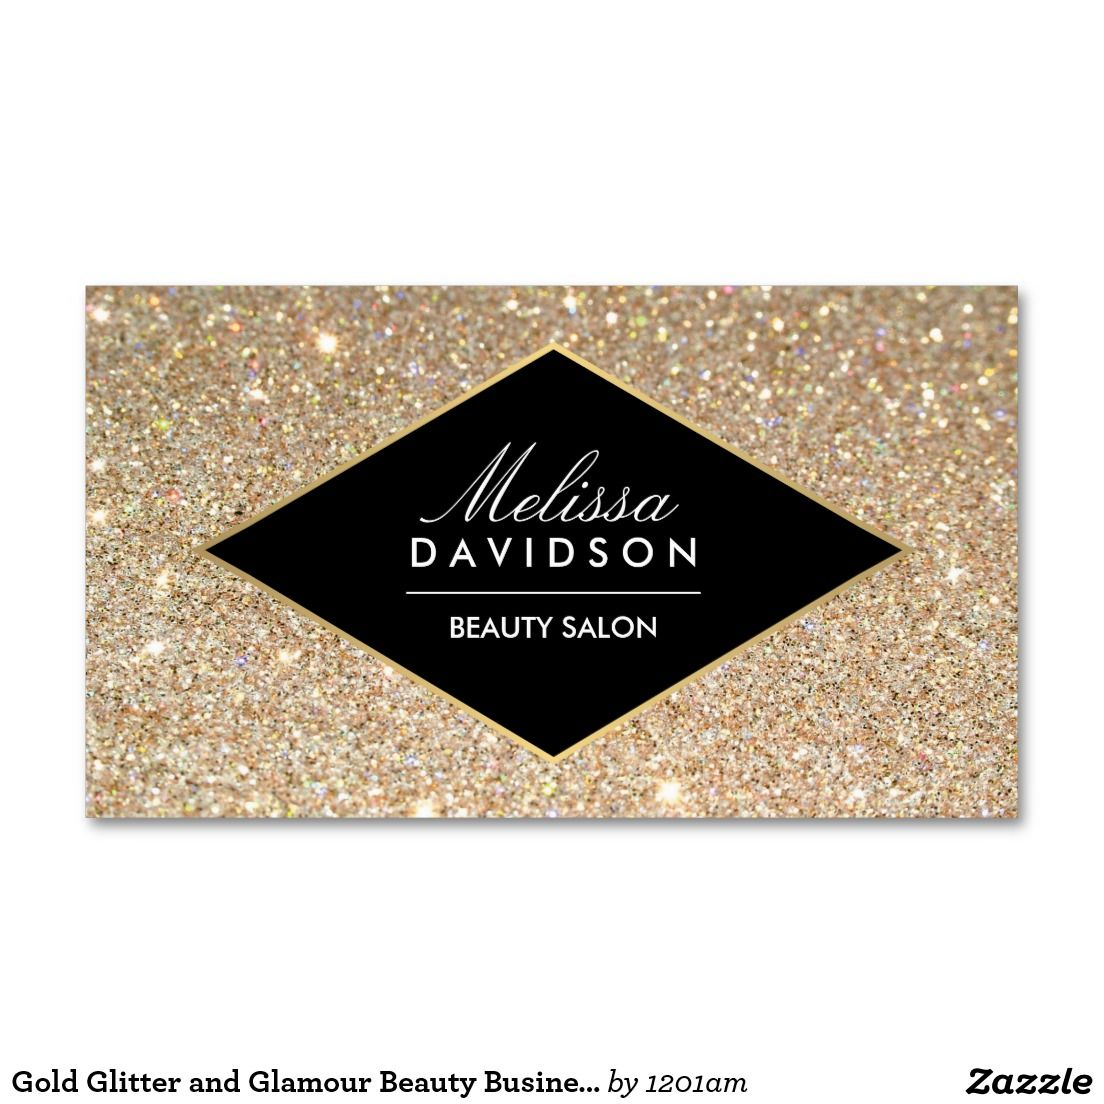 Gold Glitter and Glamour Beauty Business Card | Tarjetas ...